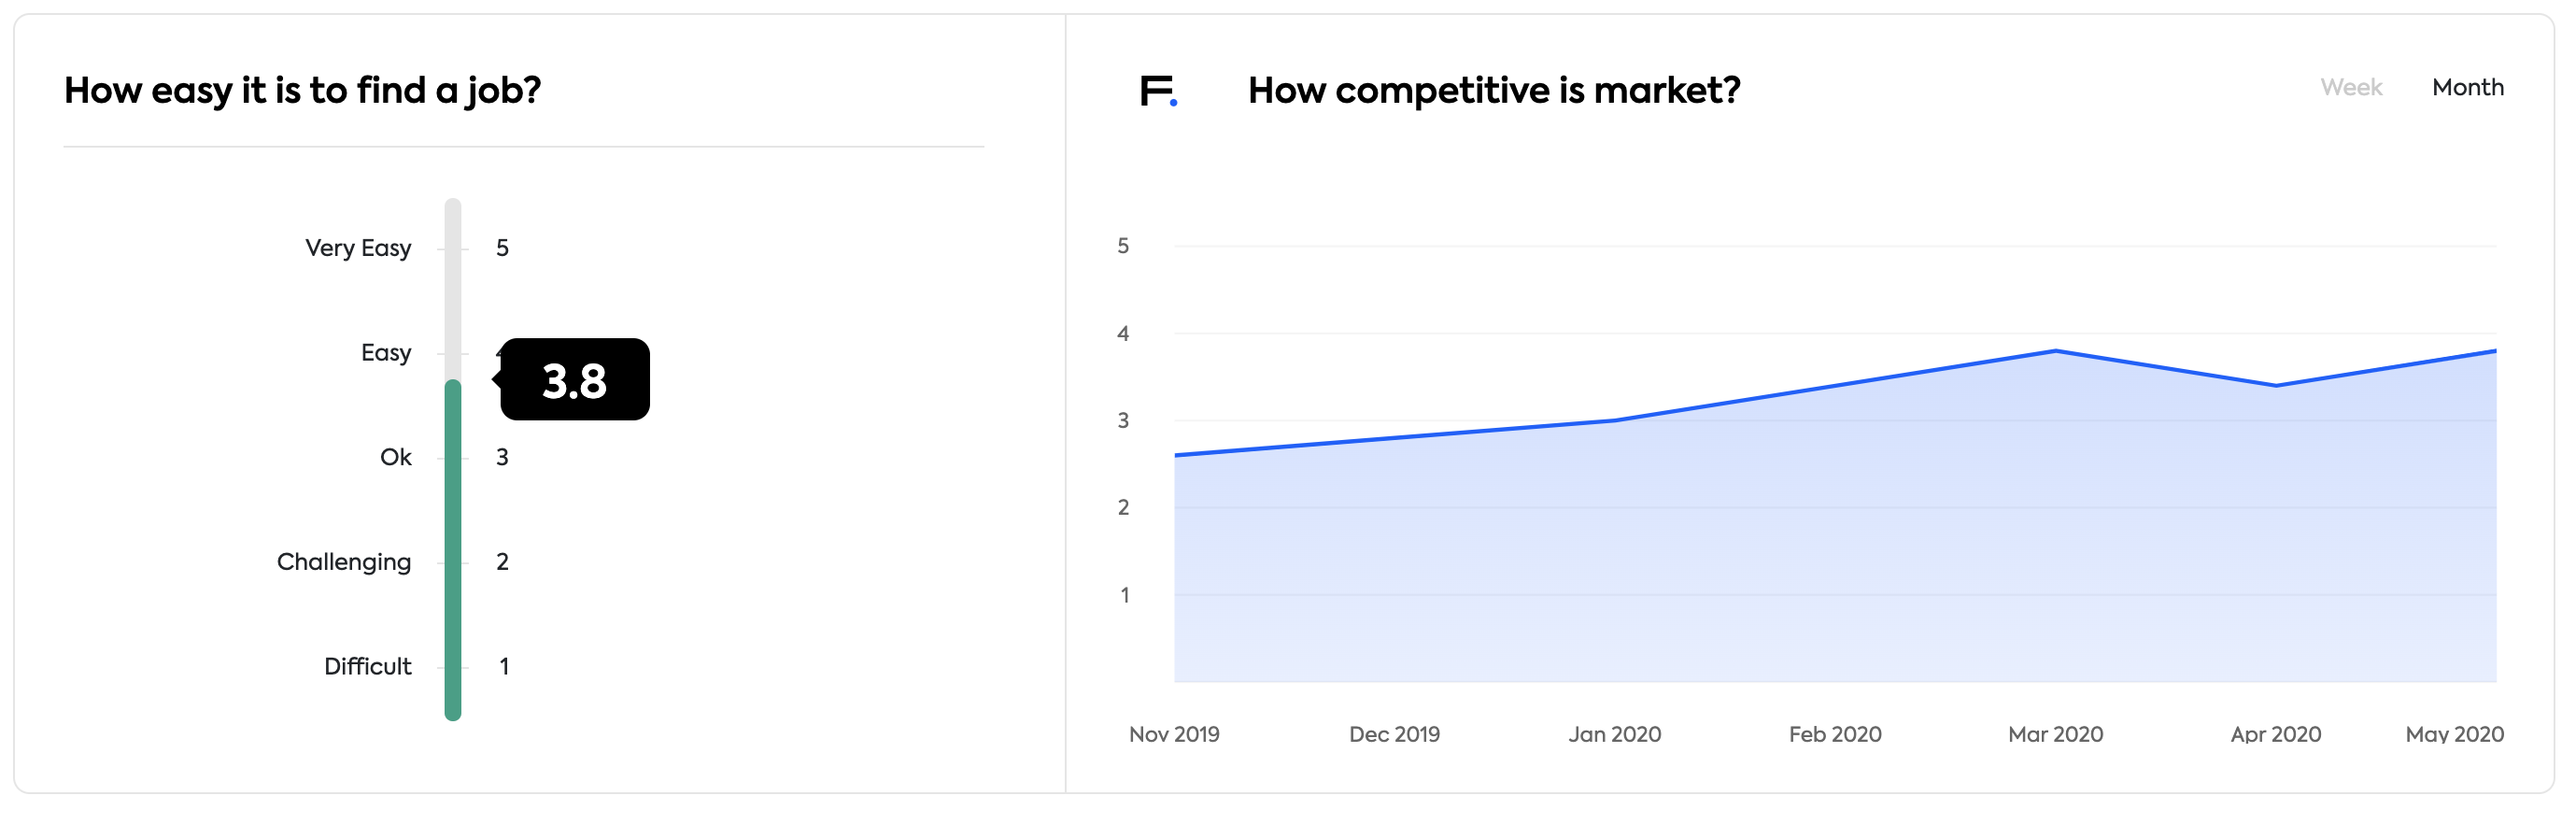 market competitiveness lithuania may 2020